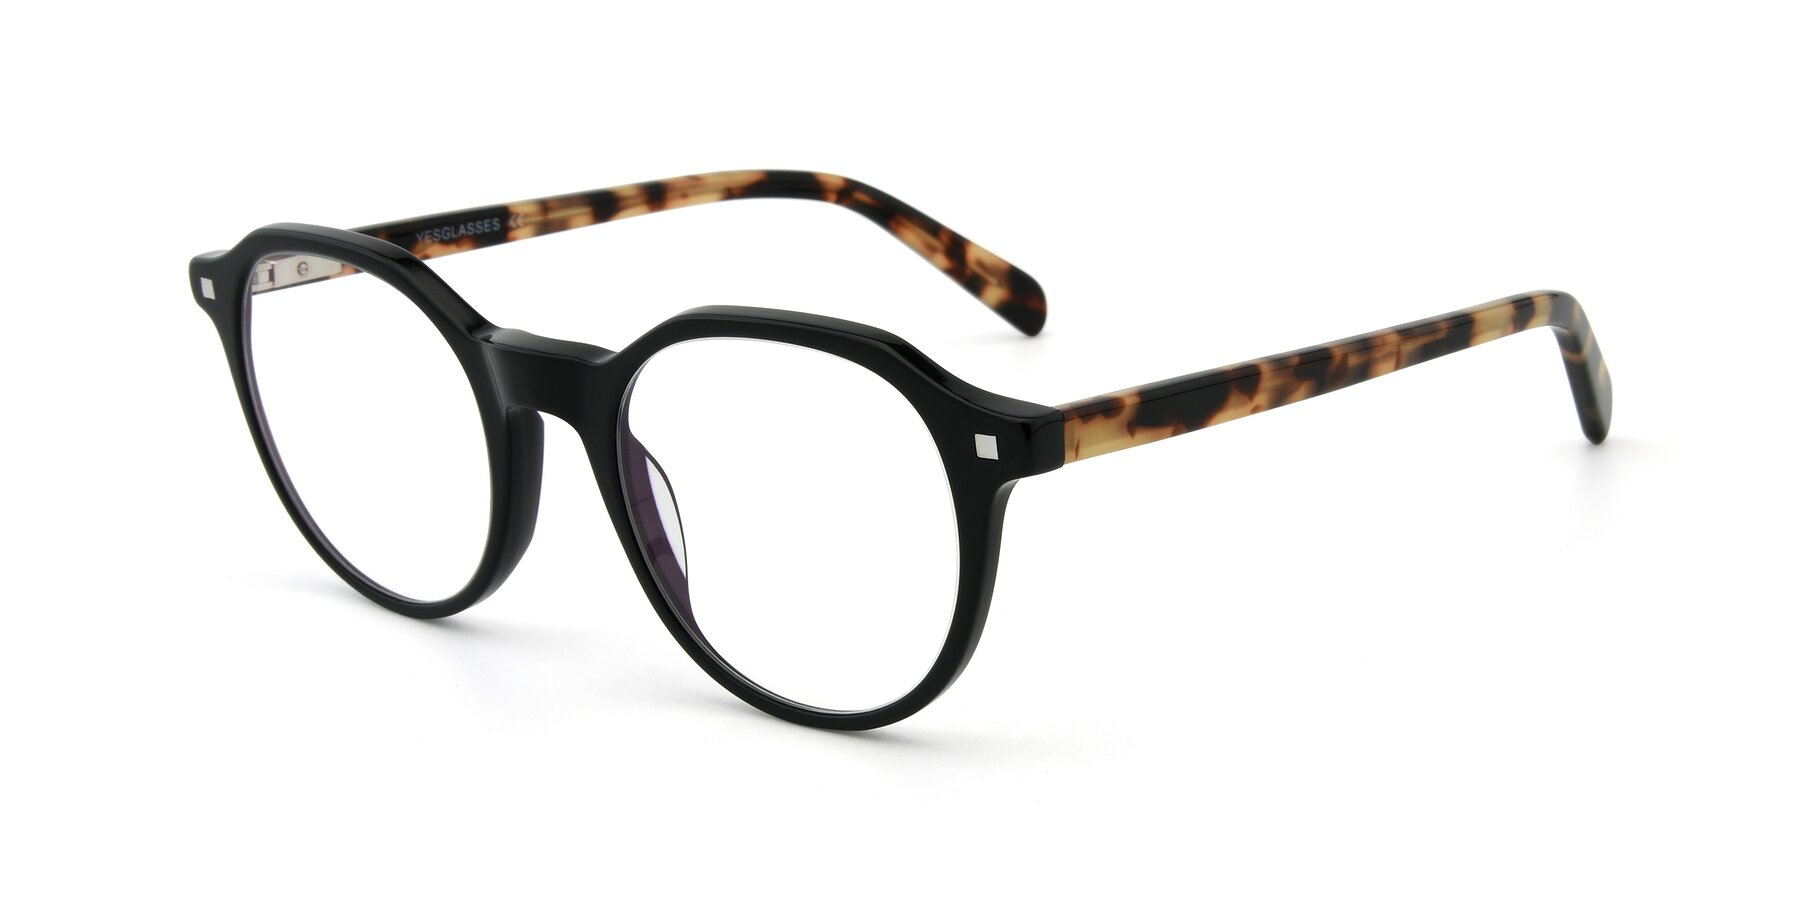 Angle of 17425 in Black with Clear Eyeglass Lenses